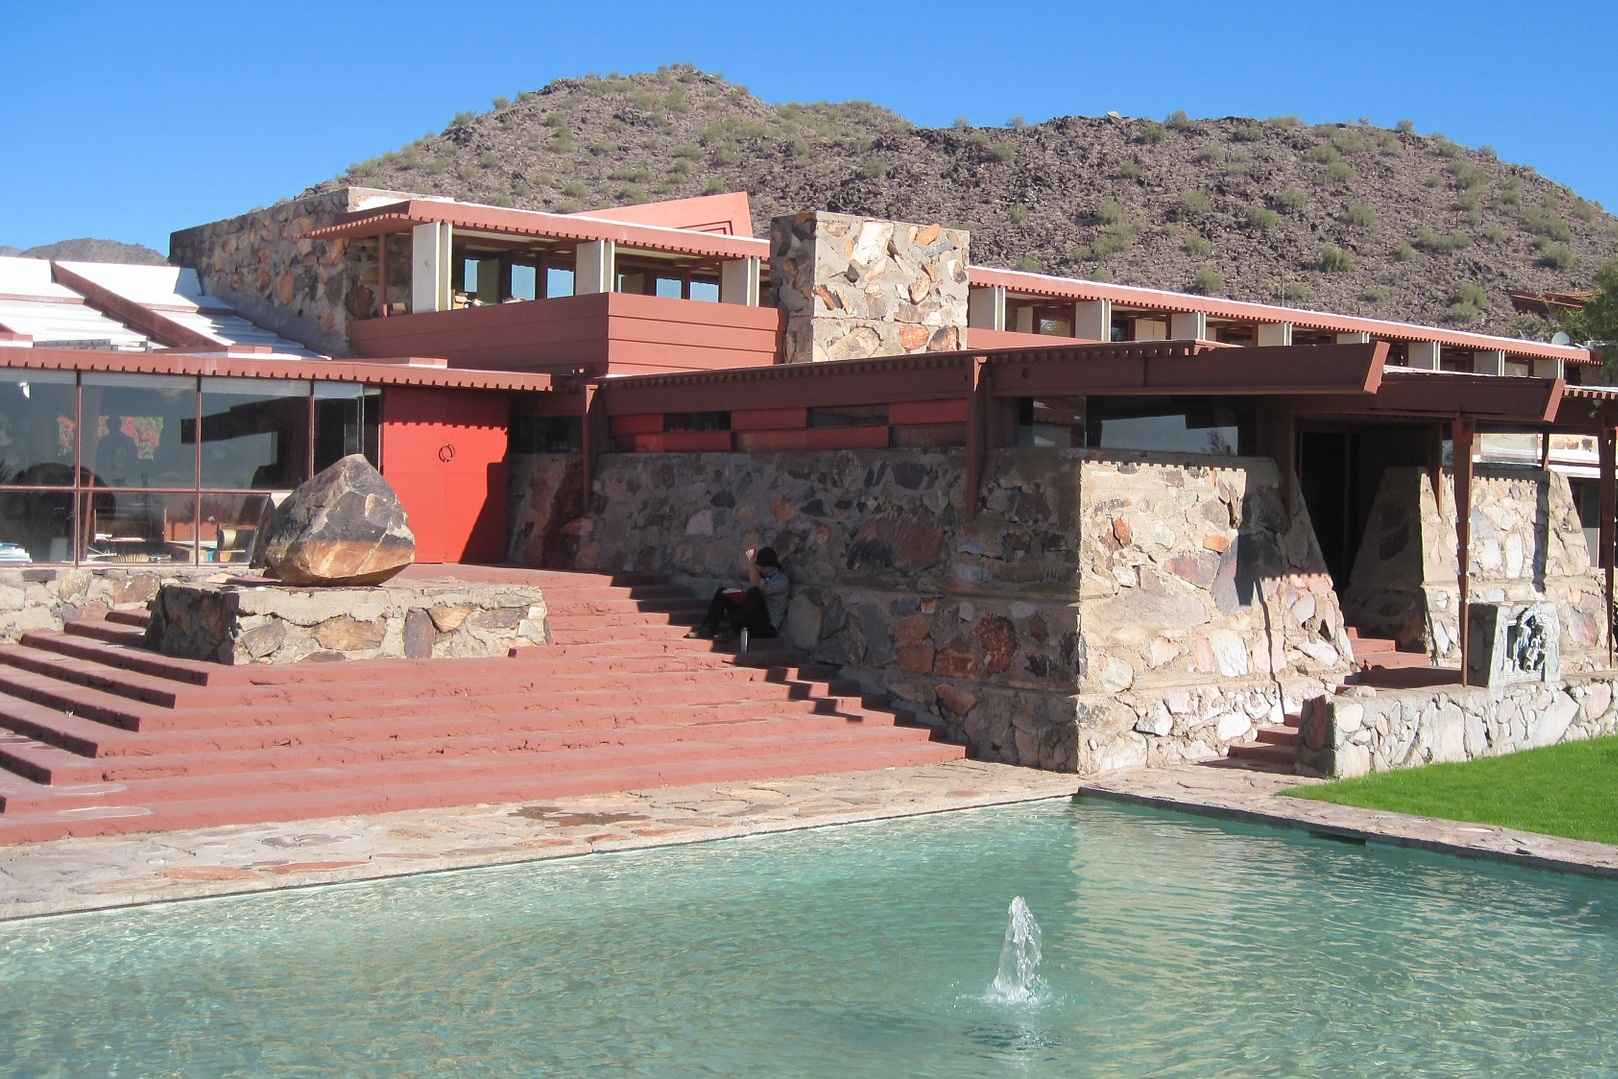 Taliesin West - This is Frank Lloyd Wright's world famous home and architectural laboratory. Built in 1937 by the famous architect himself, it is now a National Historic Landmark.